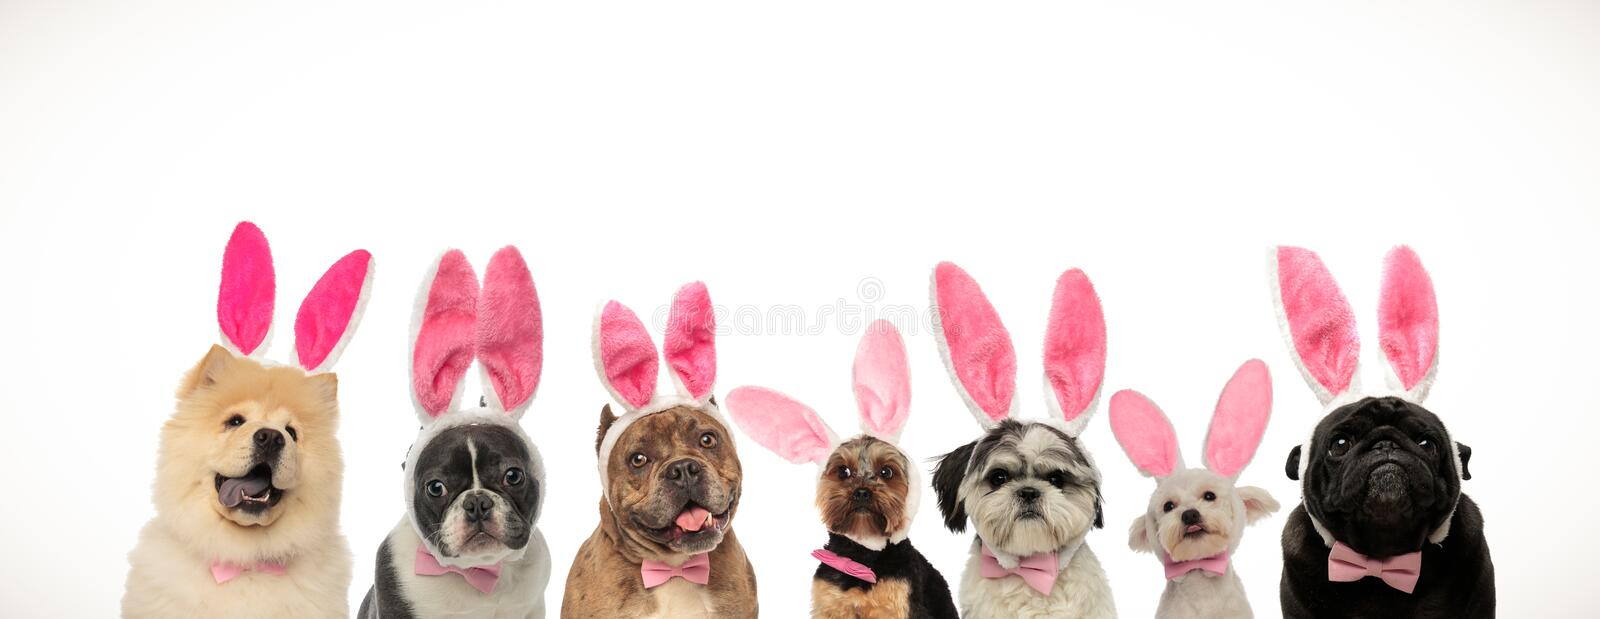 Funny group of puppies wearing bunny ears for easter holiday. On white background stock image